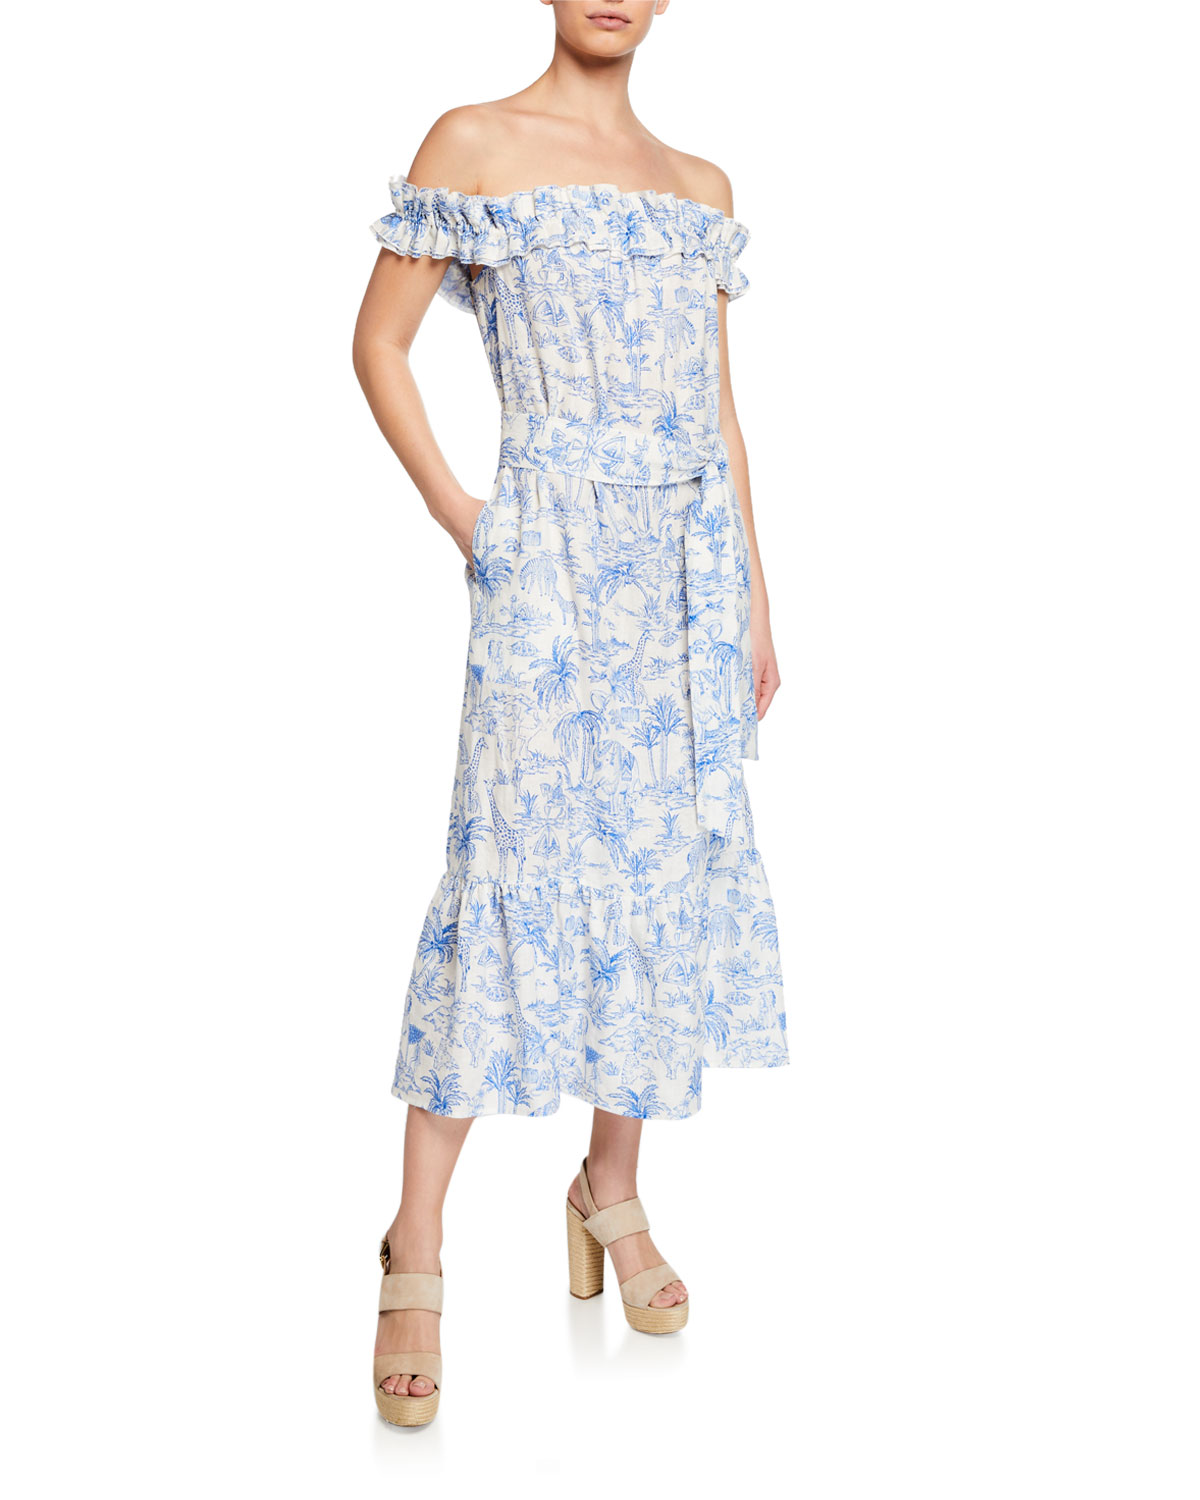 480dc5c05ded Tory Burch Printed Off-the-Shoulder Ruffle Midi Dress